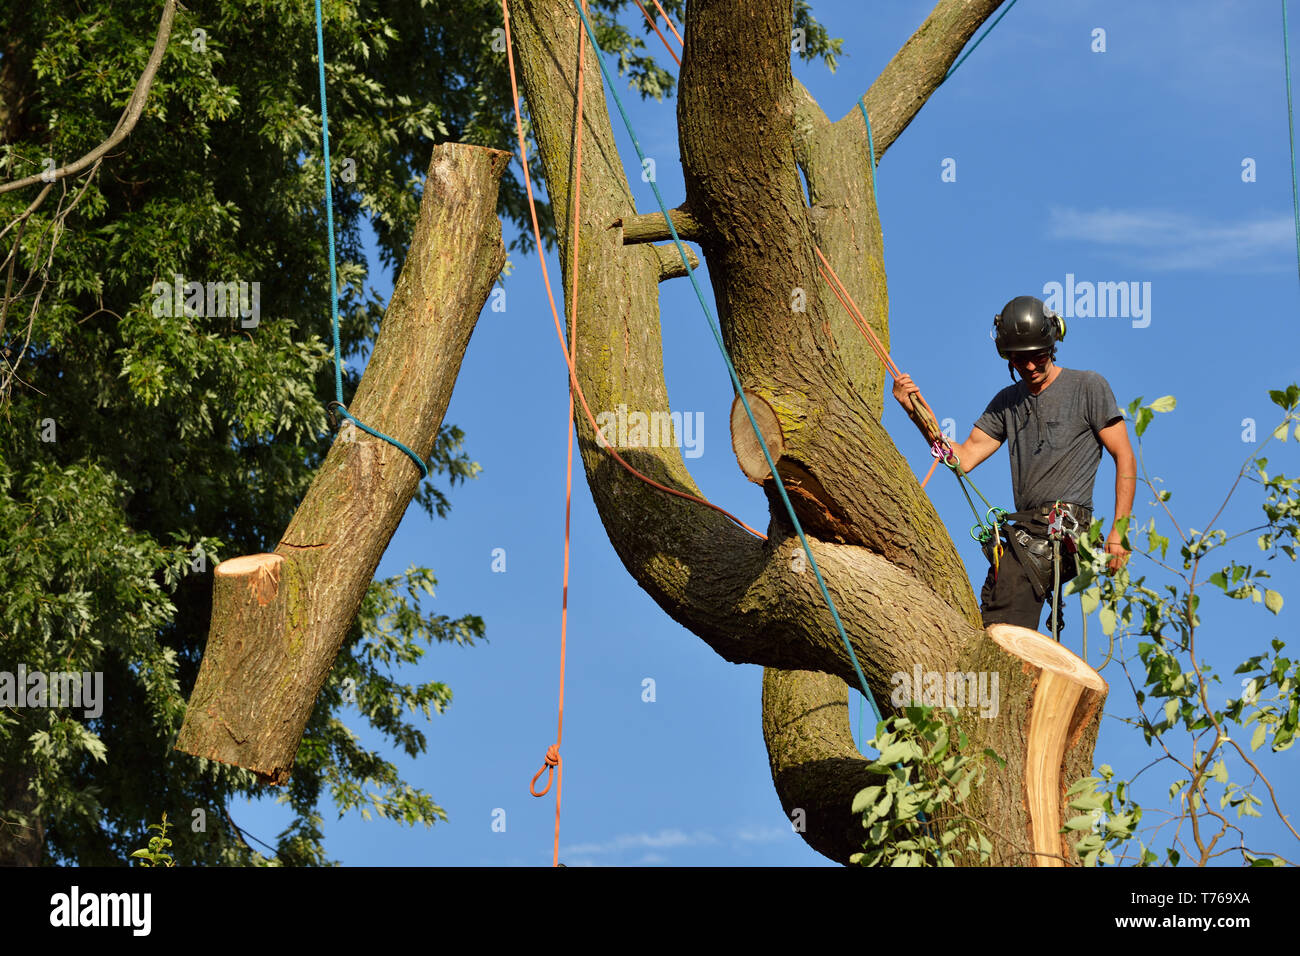 Arborist dismantling tree, holding log with ropes - Stock Image